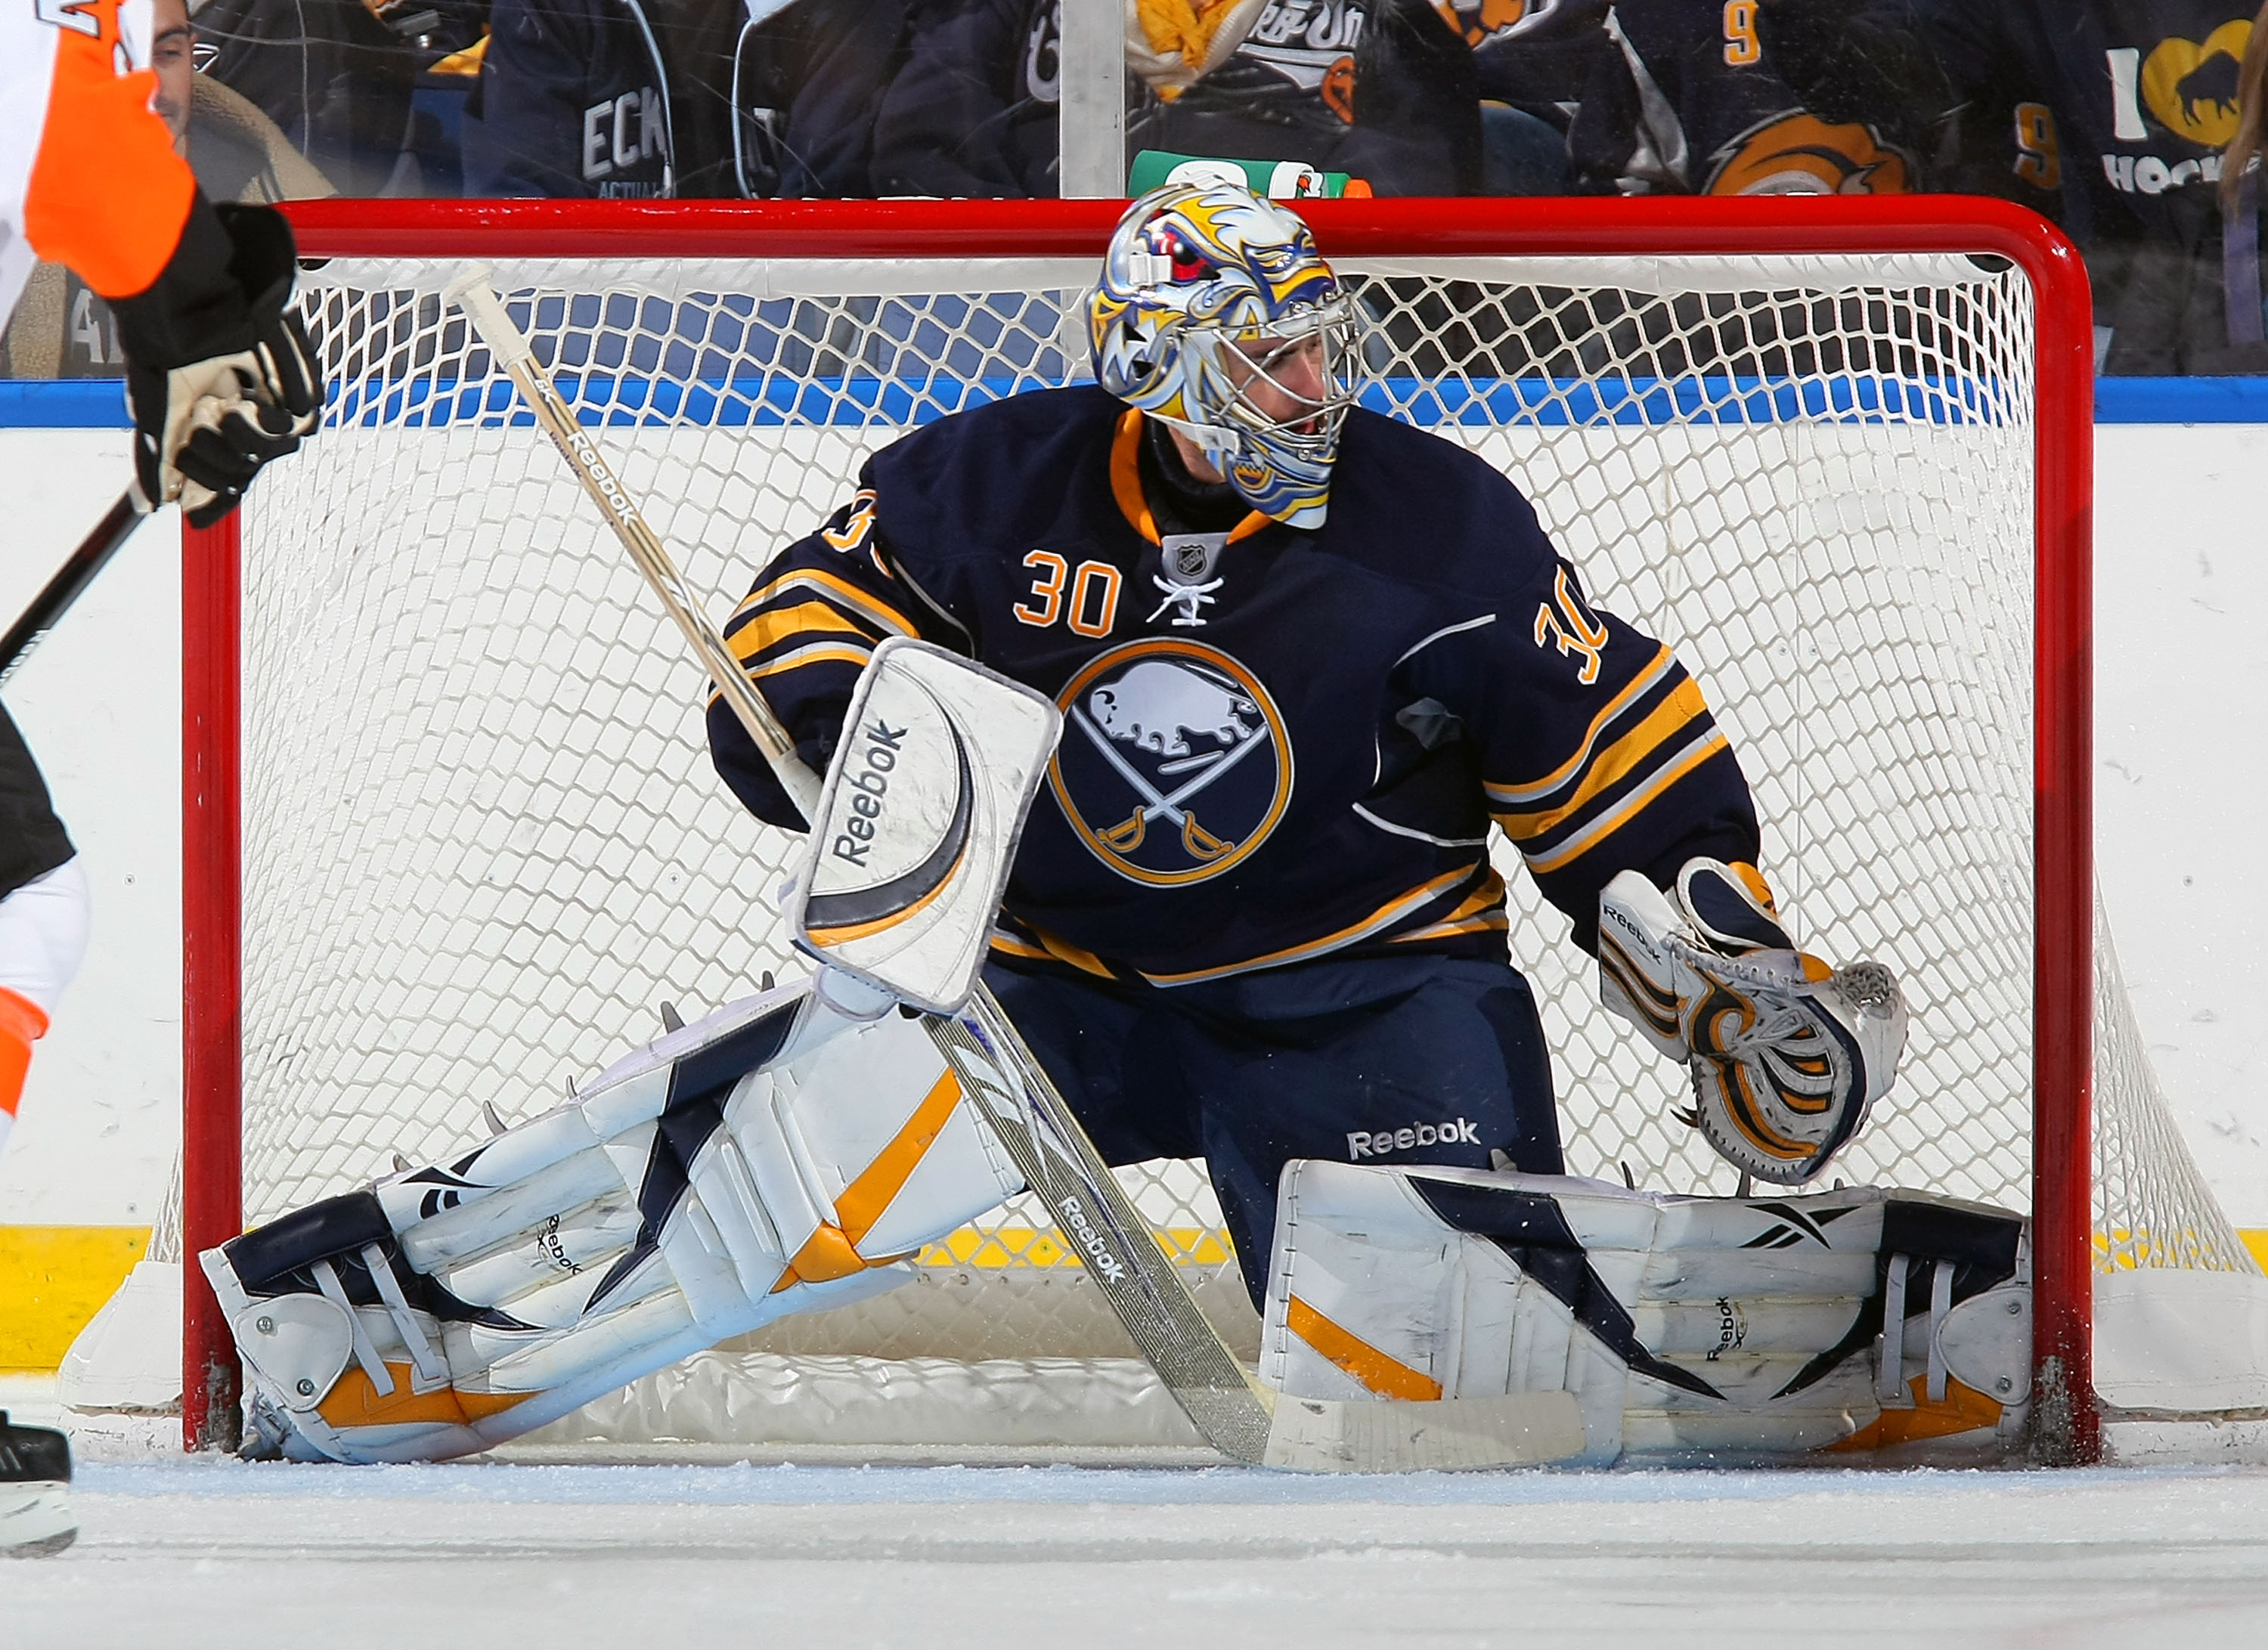 BUFFALO - OCTOBER 3:  Ryan Miller #30 of the Buffalo Sabres keeps his eyes on play against the Philadelphia Flyers during their NHL game at HSBC Arena October 3, 2010 in Buffalo, New York. The Sabres won 9-3. (Photo By Dave Sandford/Getty Images)